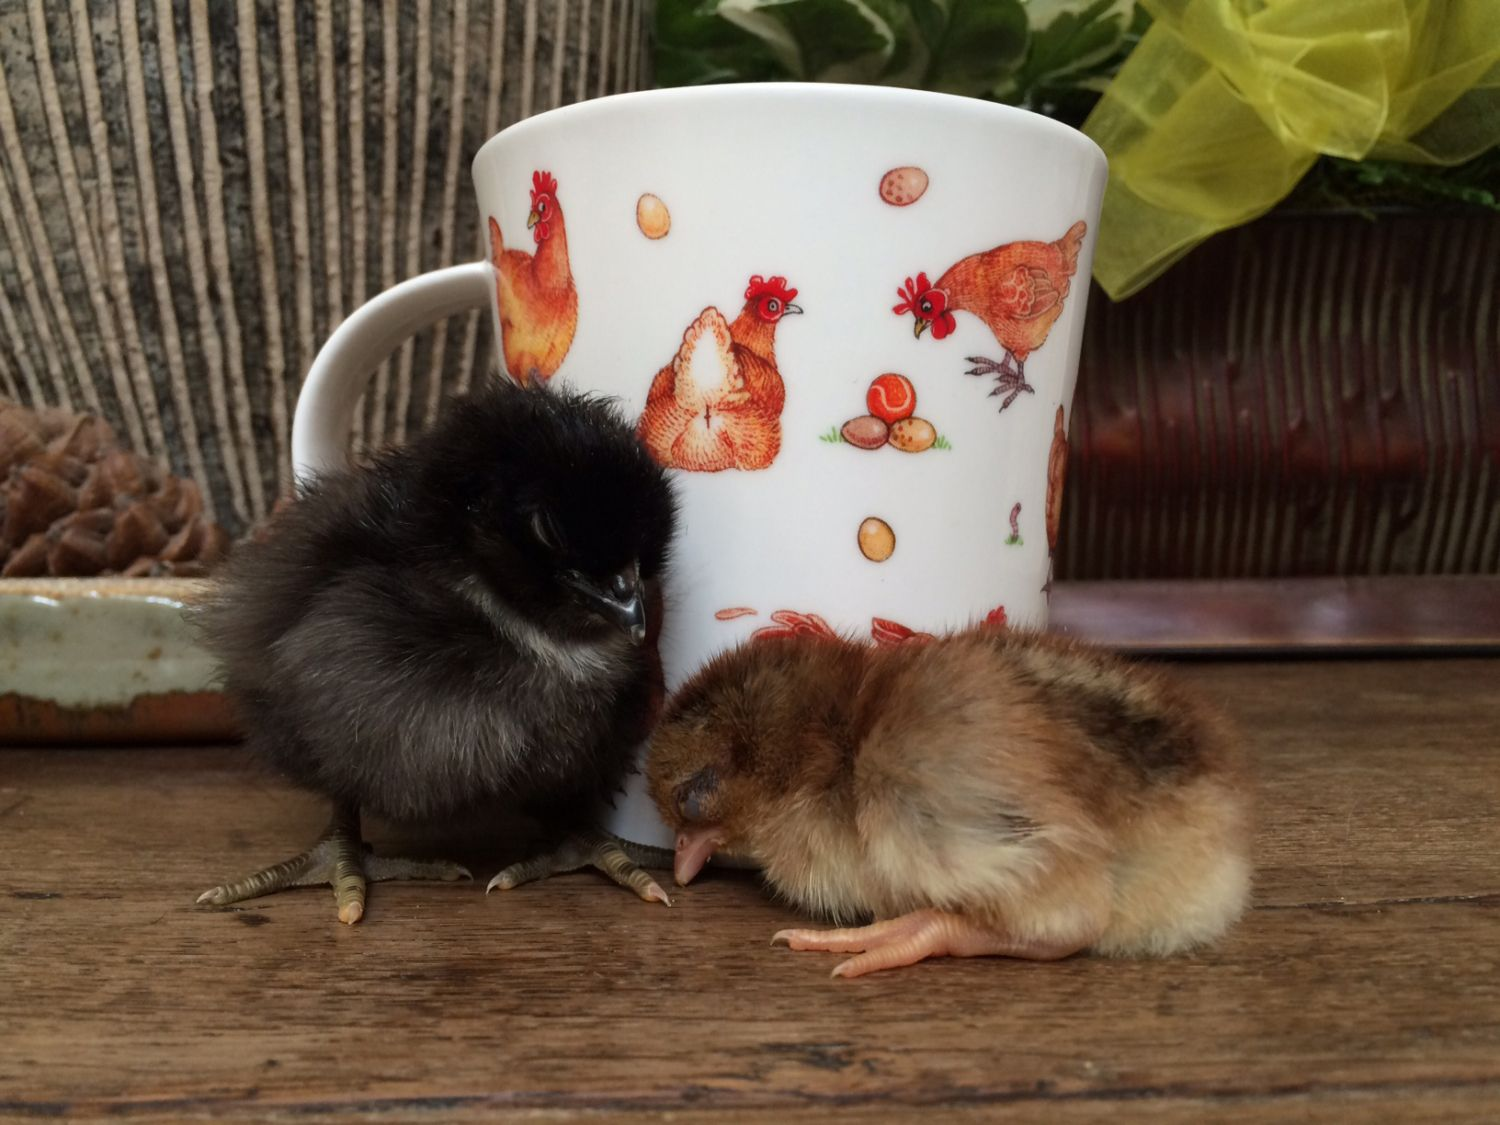 Phage's photos in Chick Mug Shots a Contest thread for participants of the Springing in the Chicks Hatch A Long